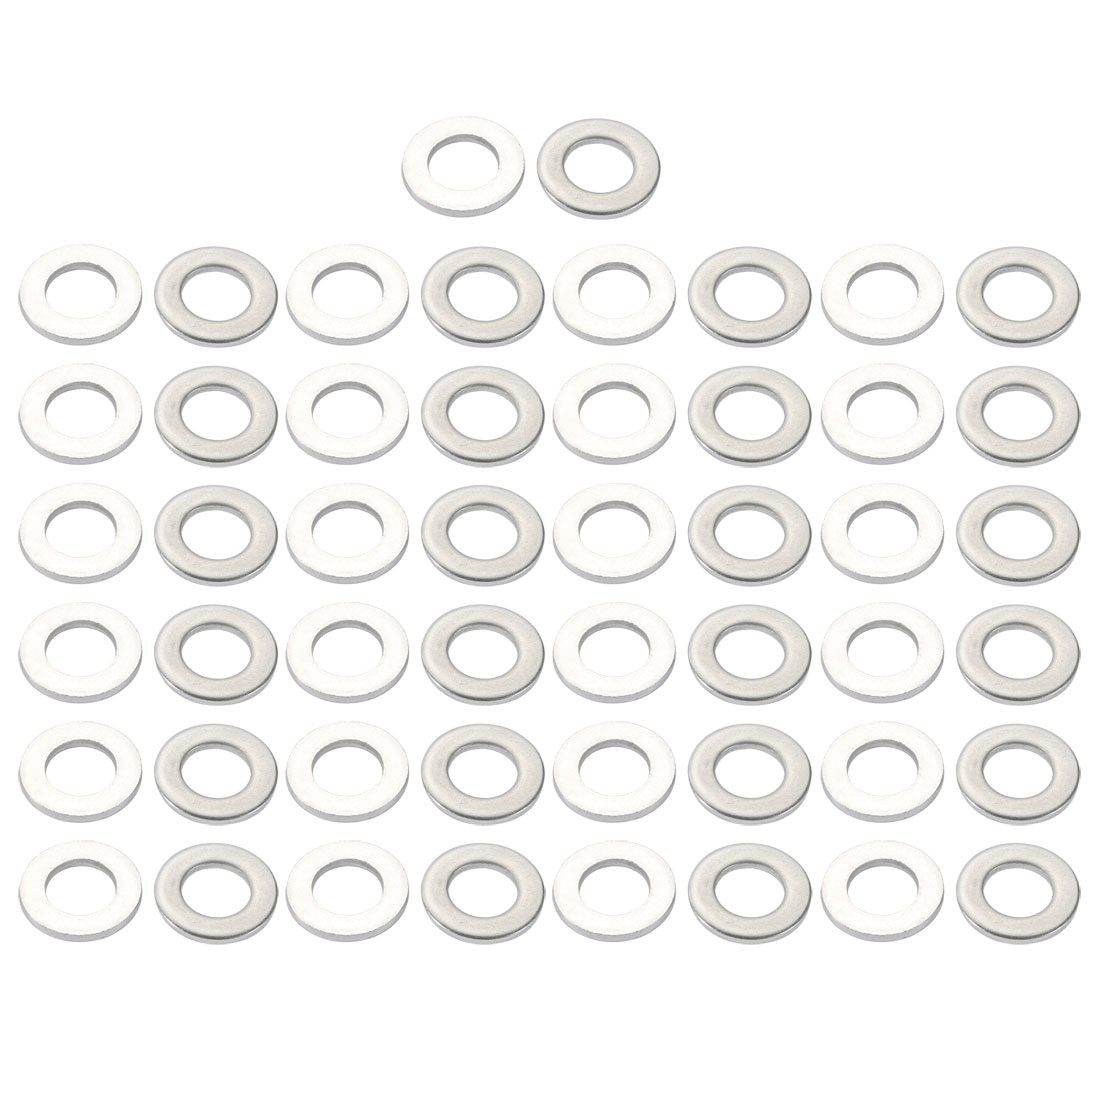 M12x24mmx2.5mm DIN125 316 Stainless Steel Flat Washer Silver Tone 50pcs